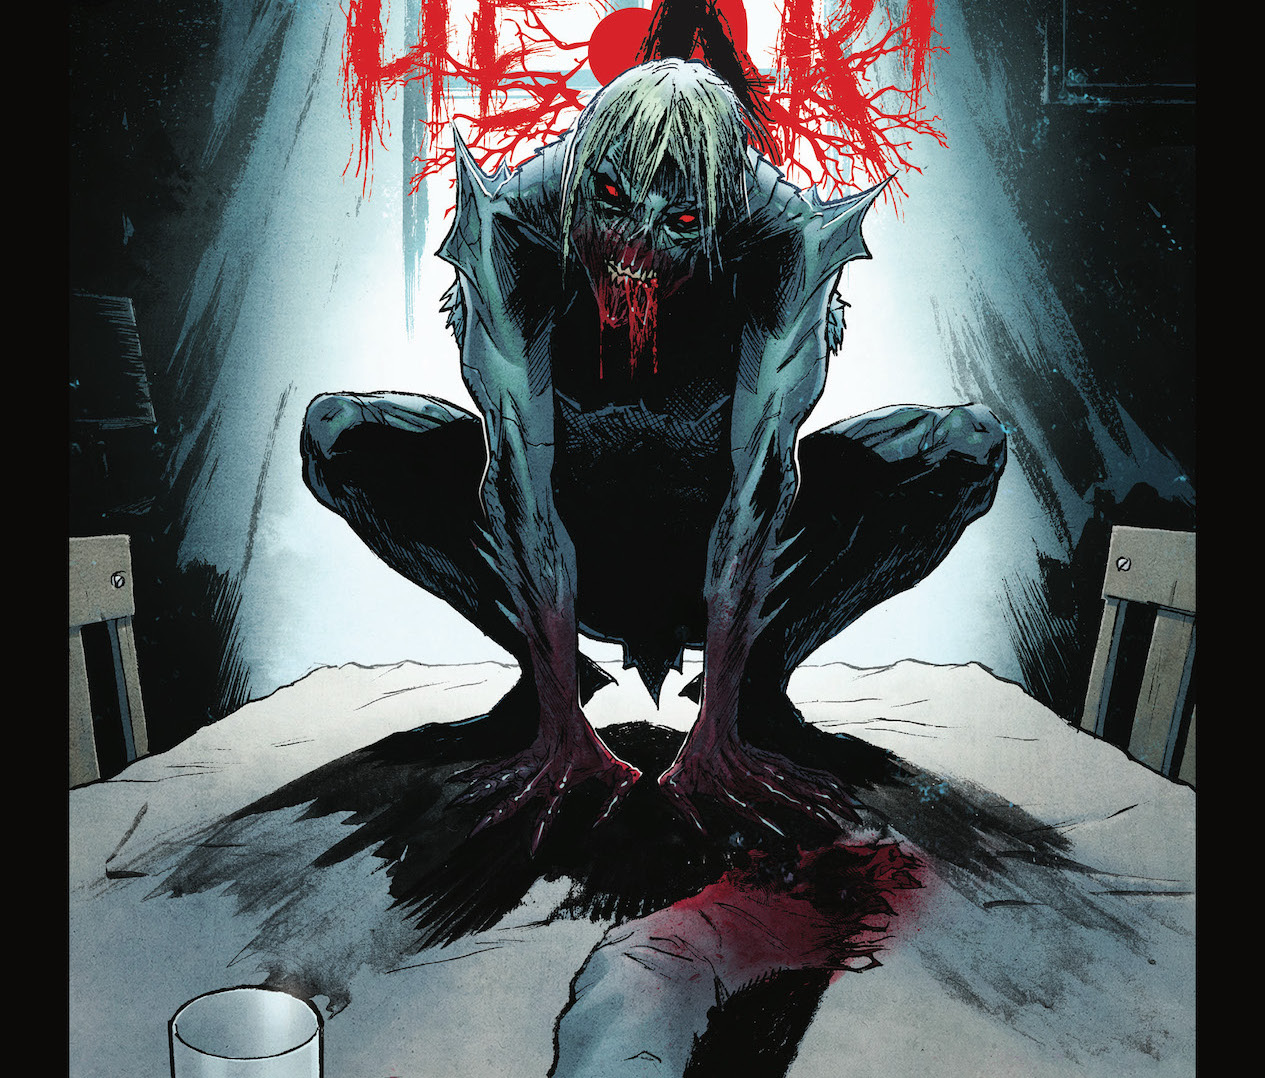 Action Lab reveals new horror series 'Sweet Heart' out March 2020